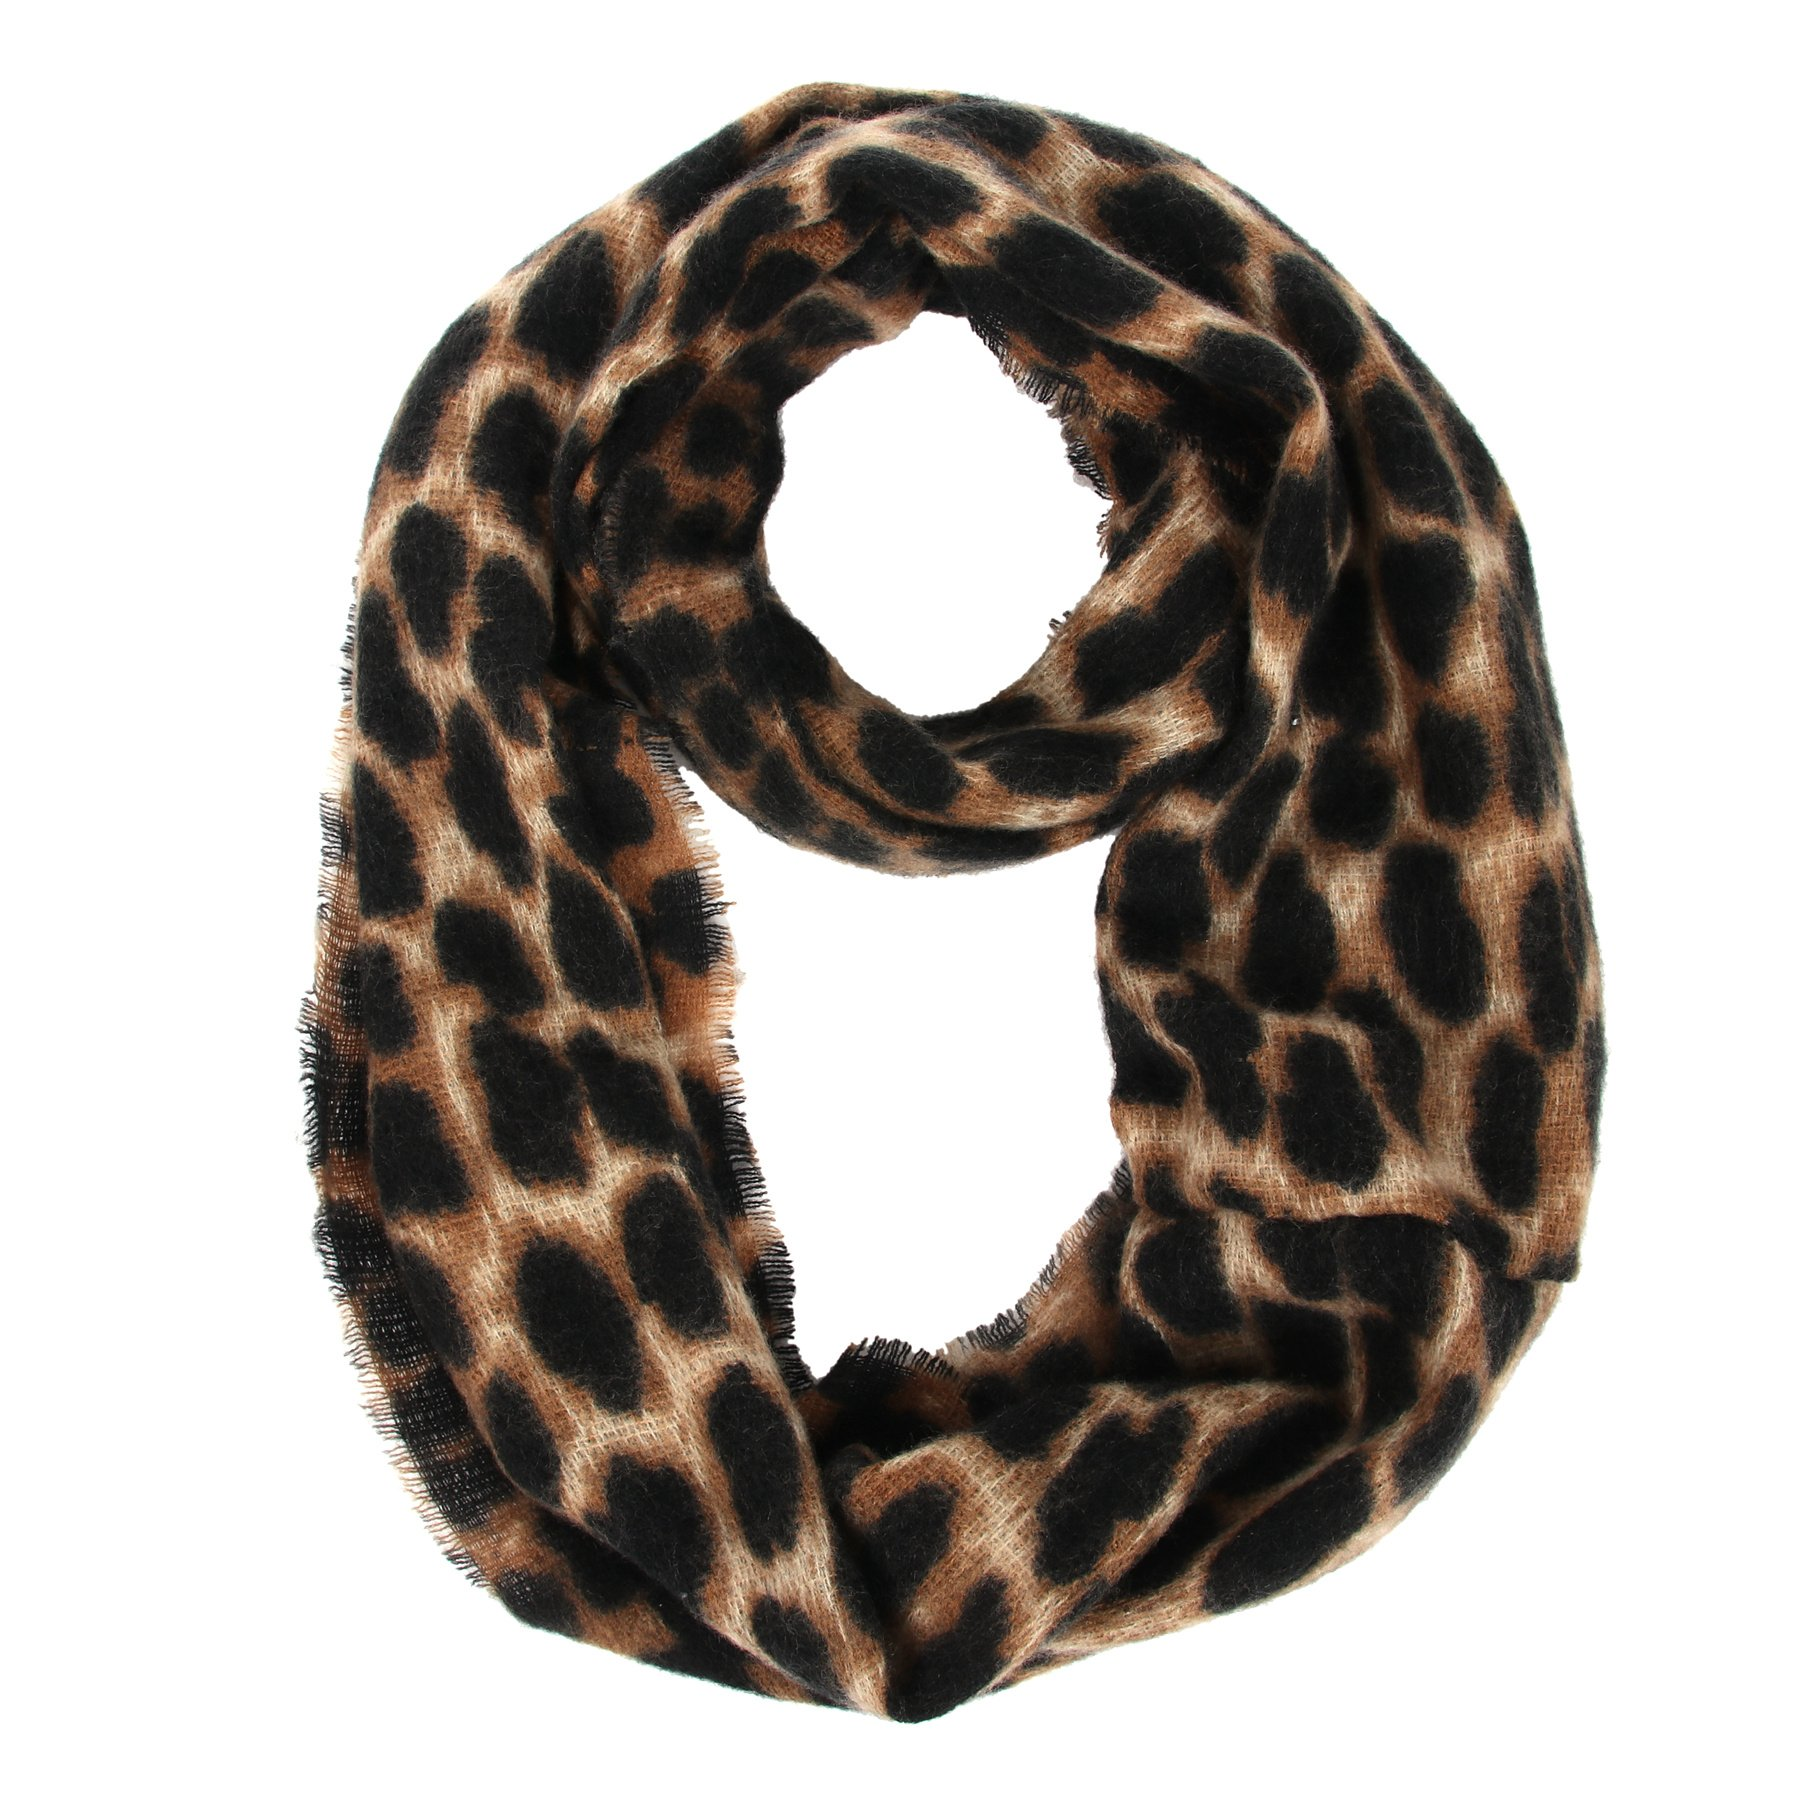 Women's Leopard Print Infinity Scarf - Warm Lightweight Acrylic Cheetah Loop Circle Scarves for Ladies and Girls